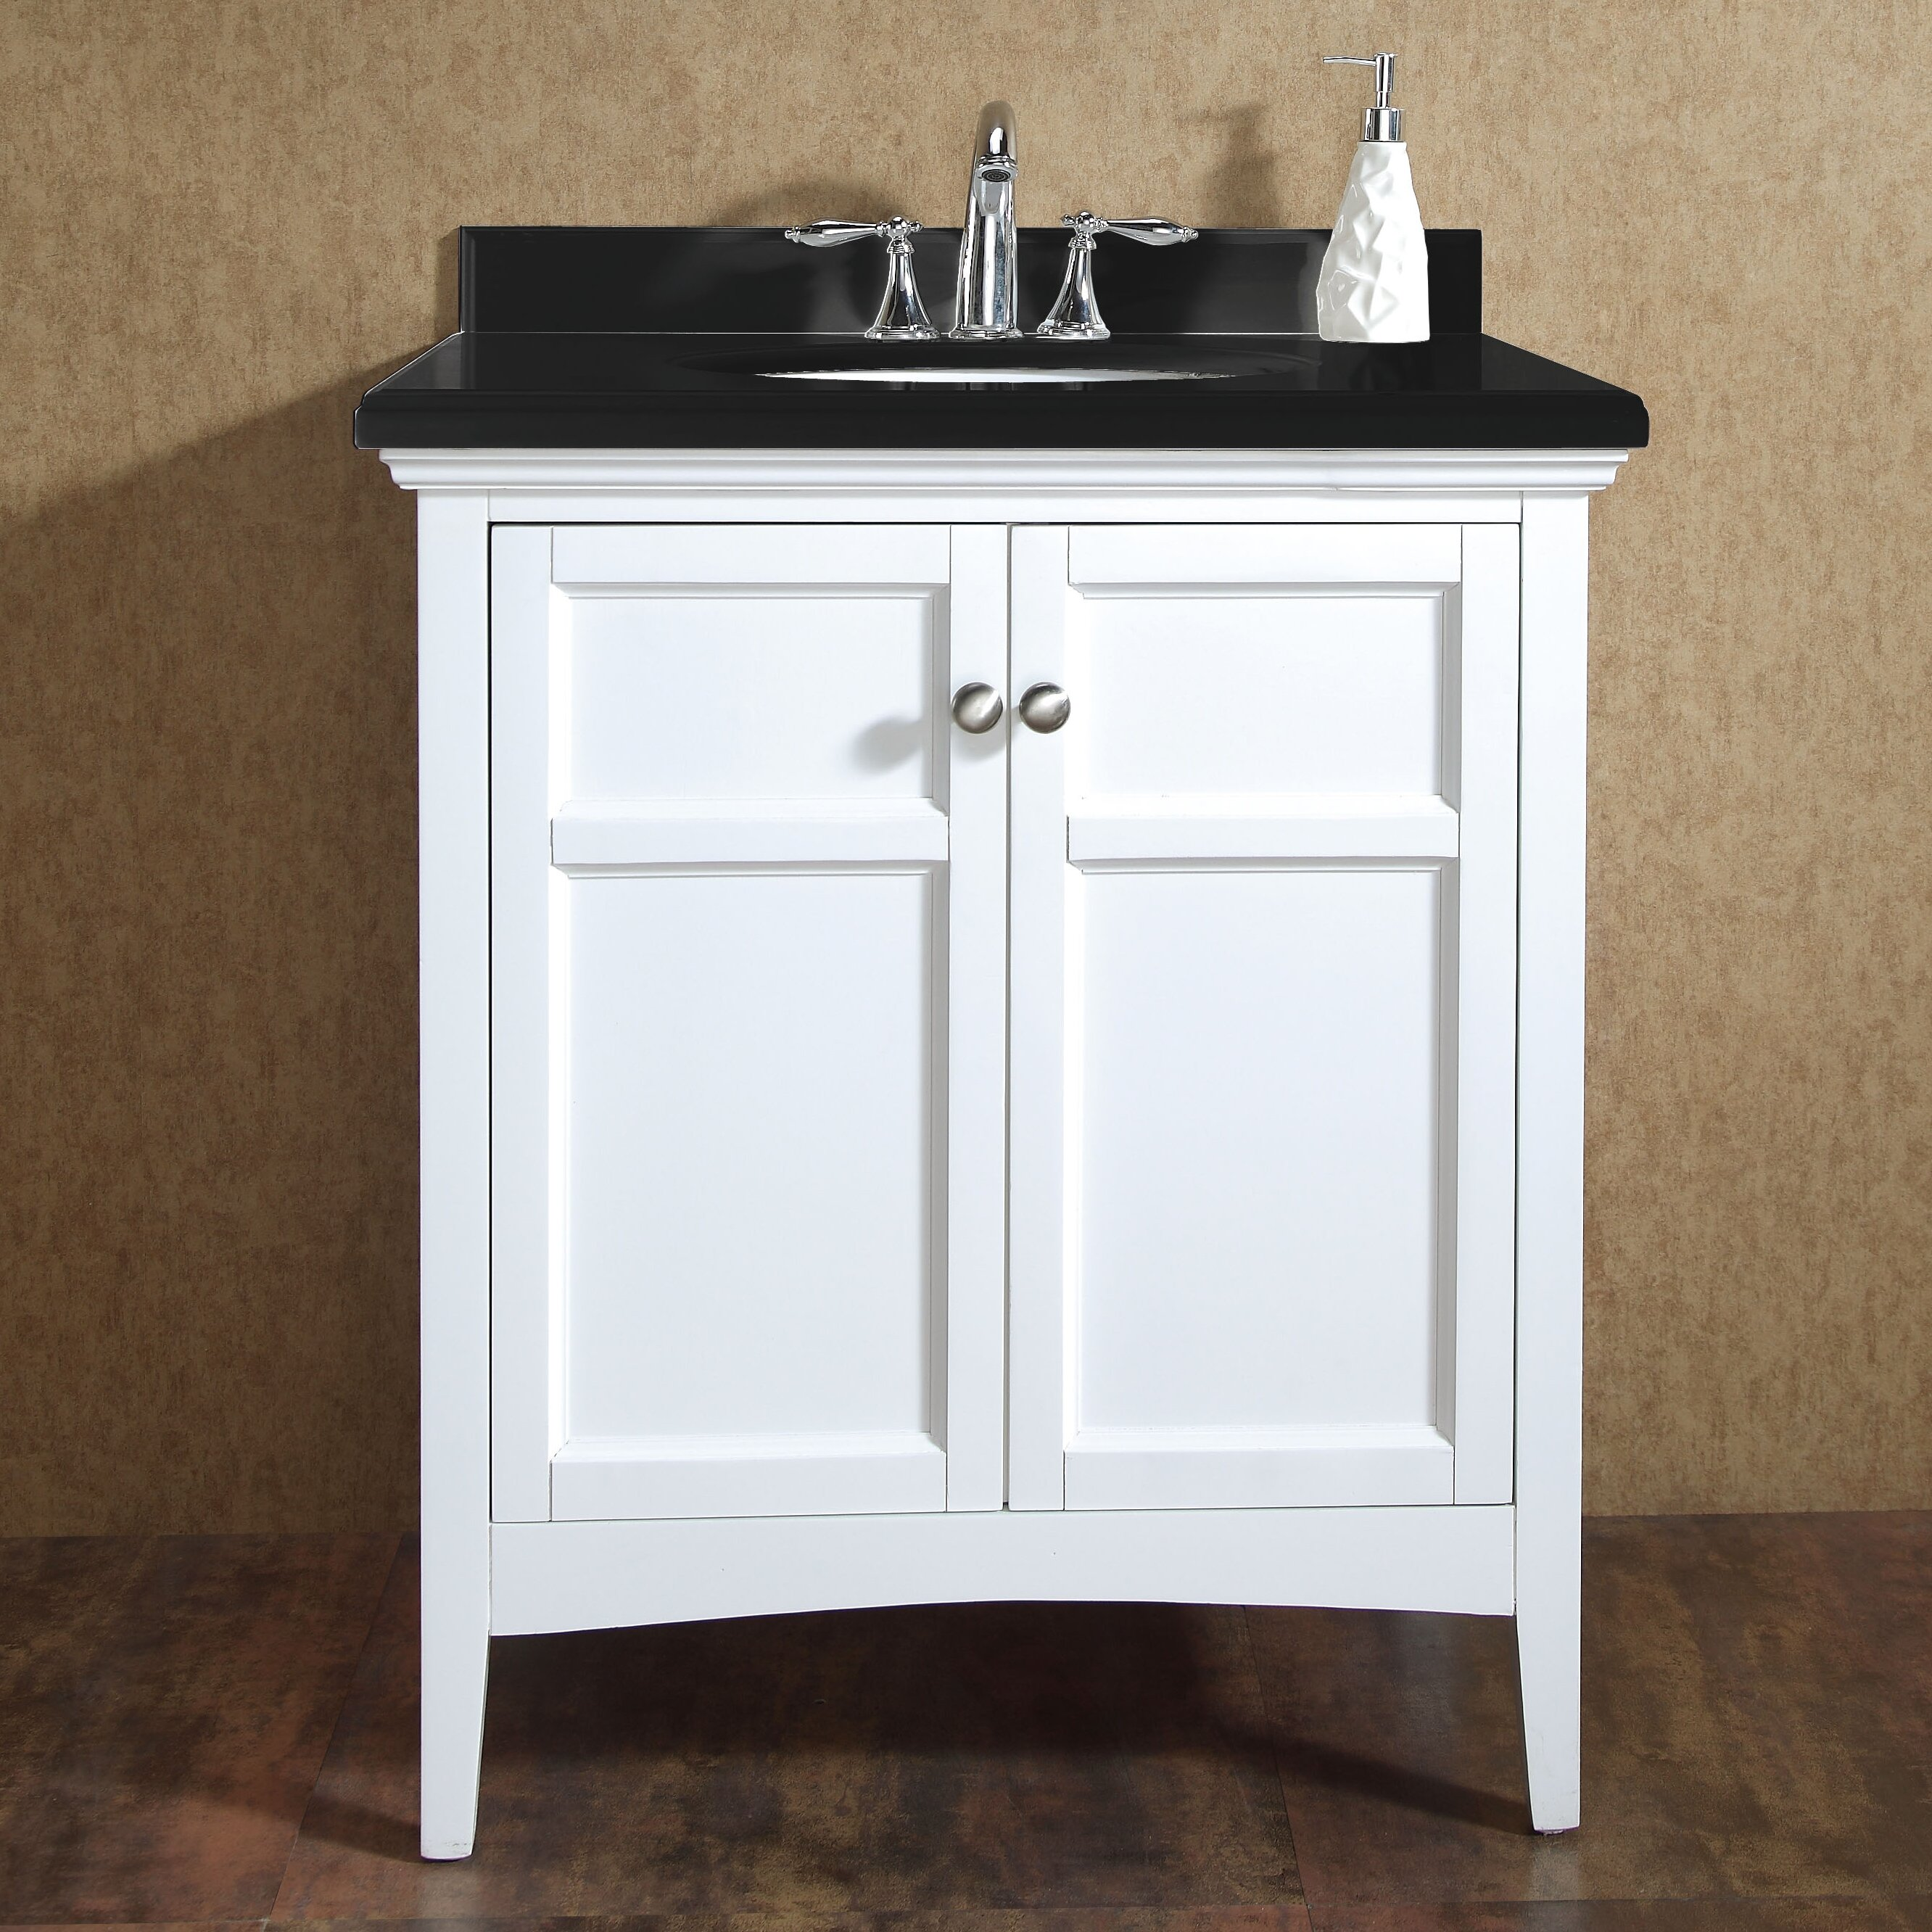 Ove Decors Campo 30 Single Bathroom Vanity Set Reviews